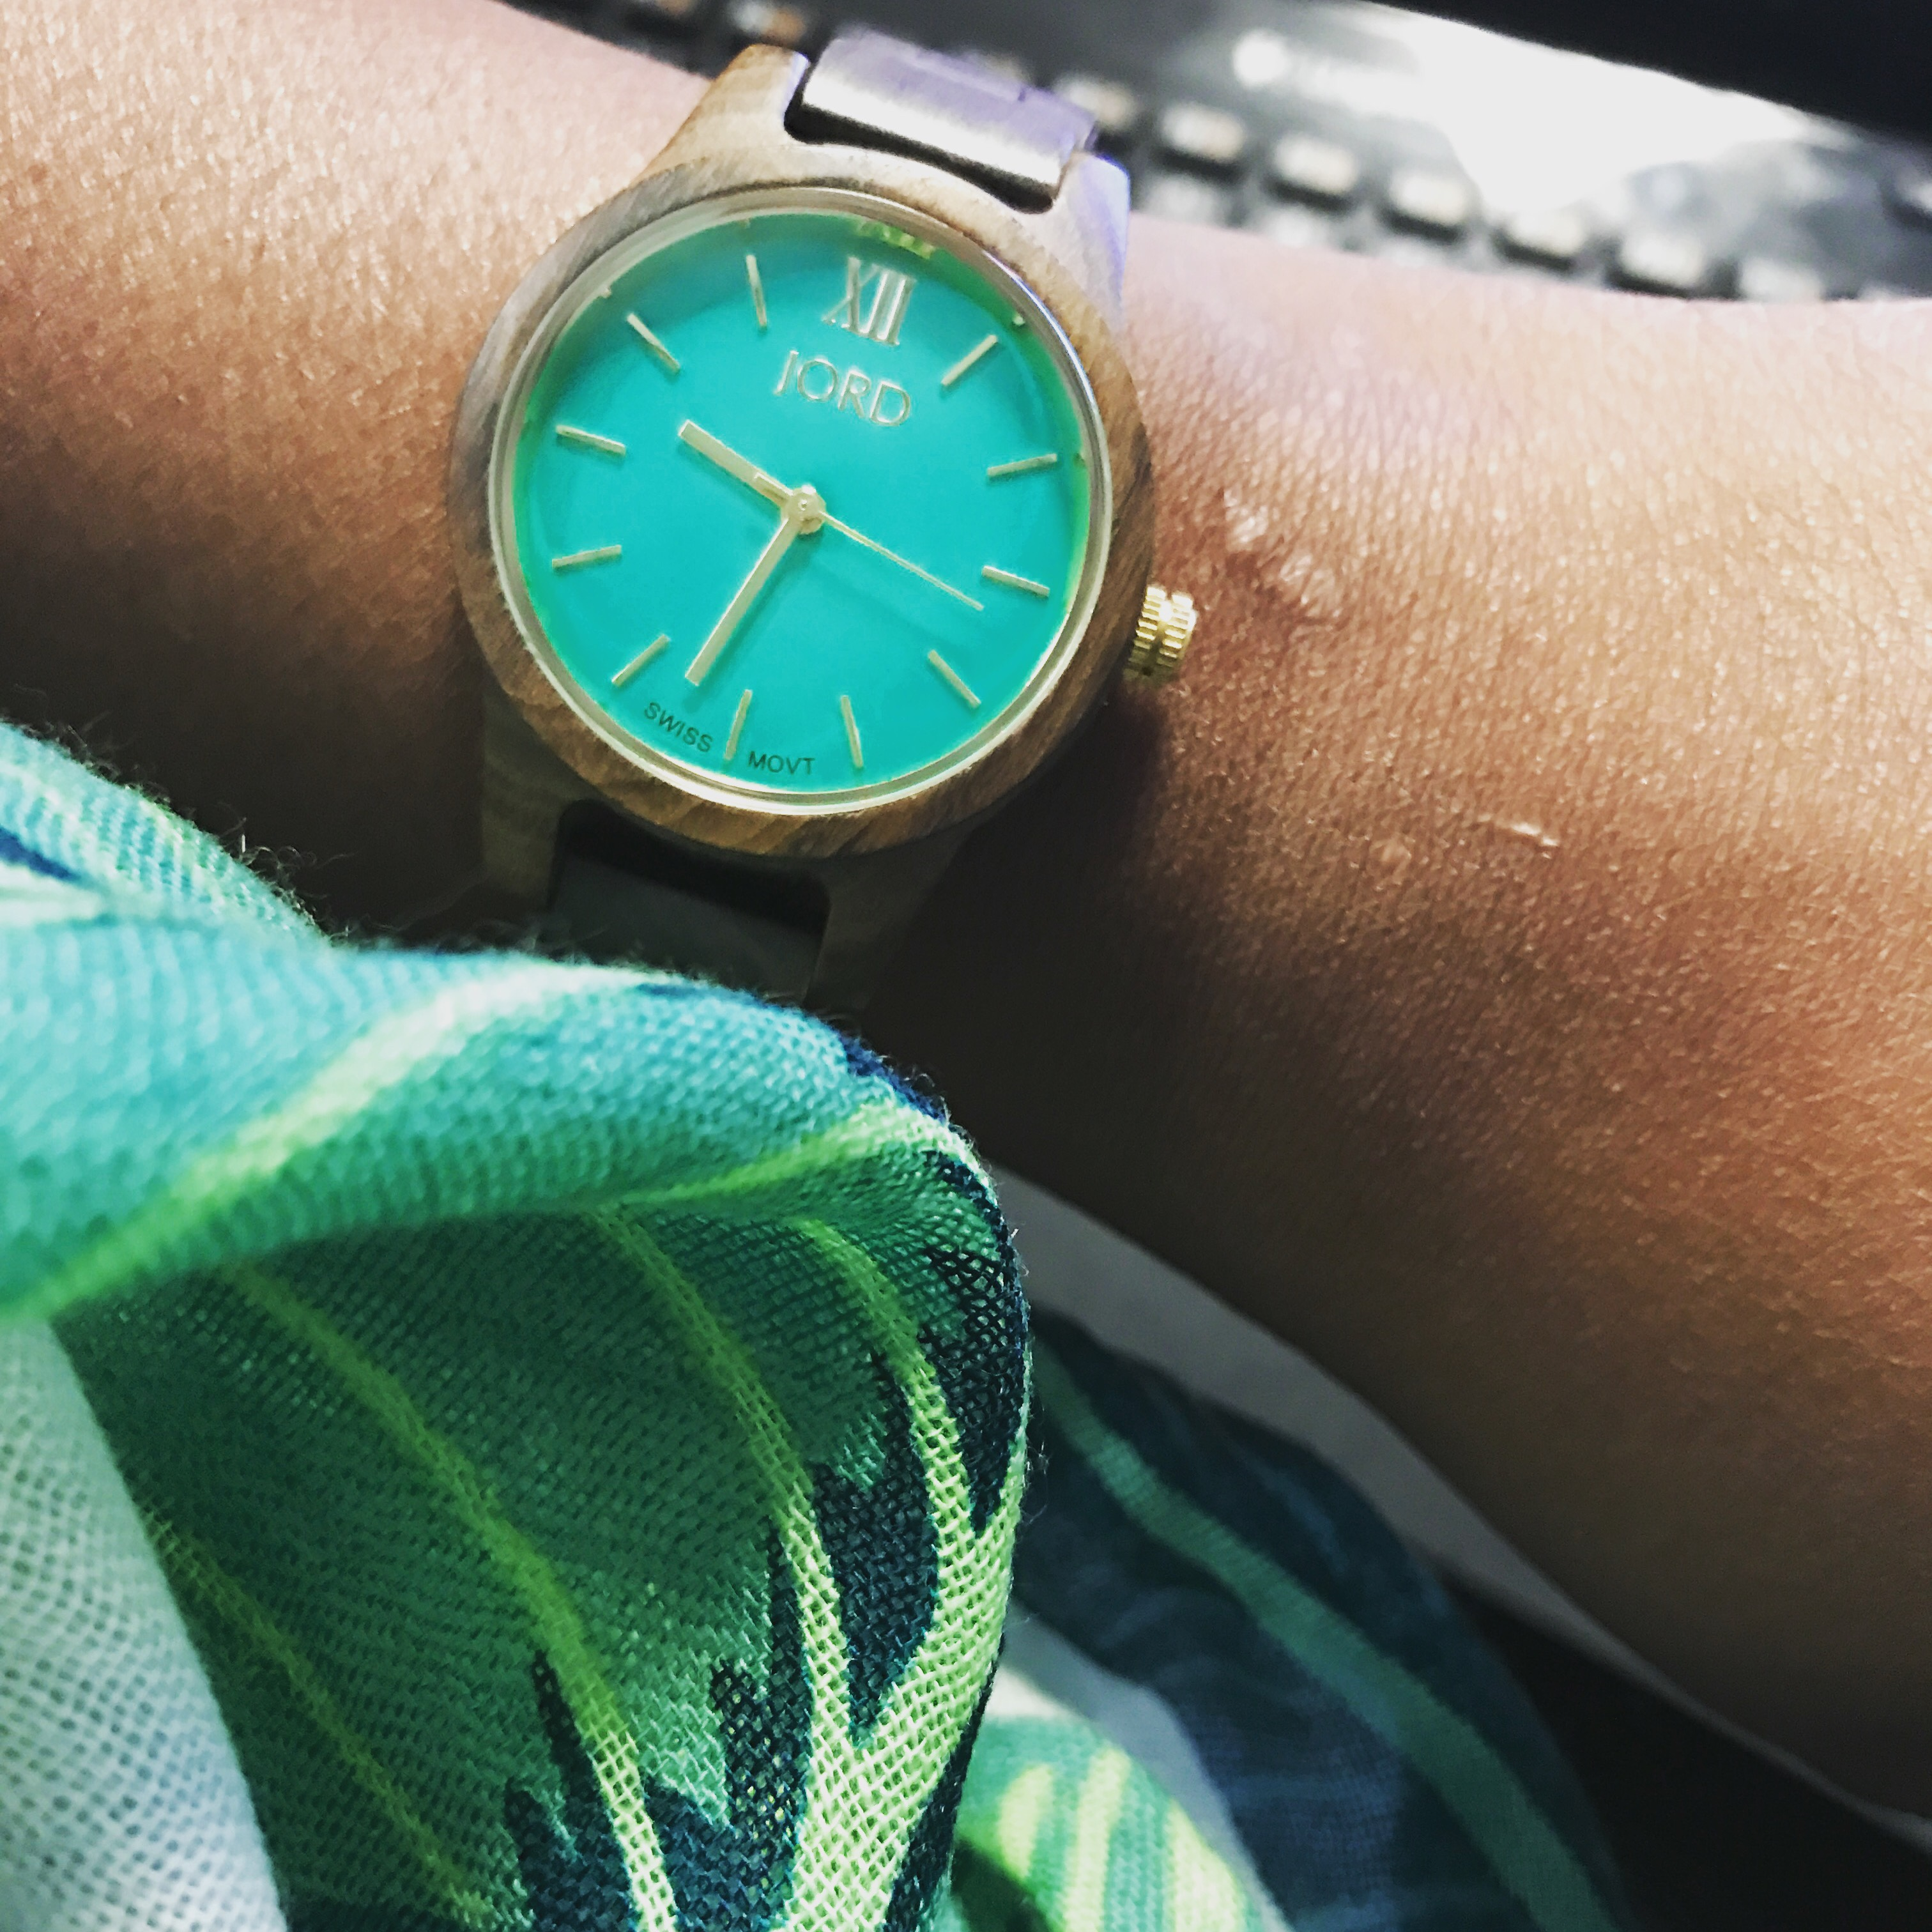 Wearing Jord Wood Watches | She Be Knowin